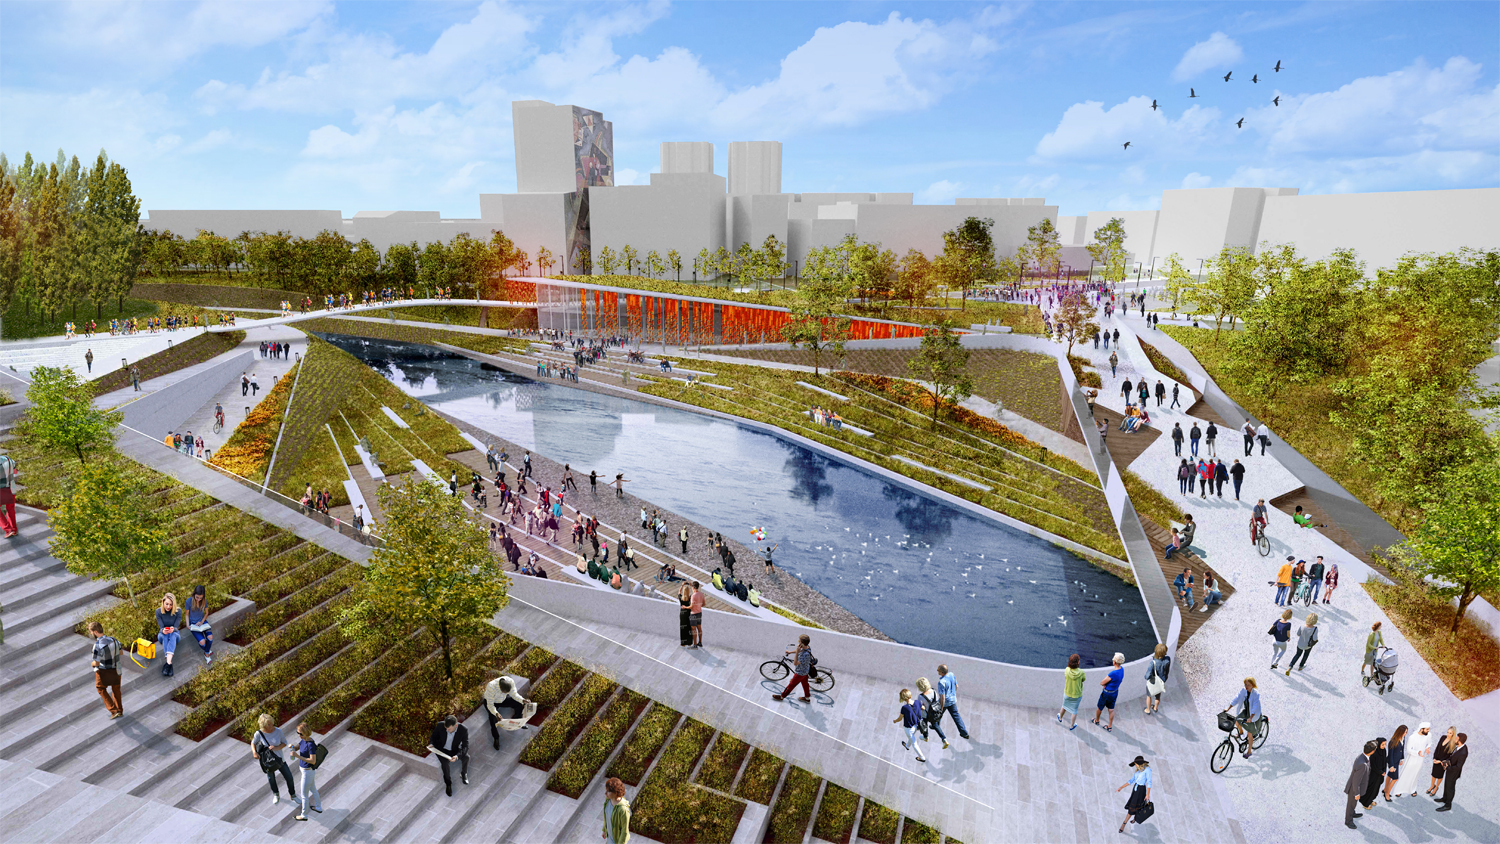 gallery of mau architecture plans an urban and landscape regeneration of fier u0026 39 s city center in